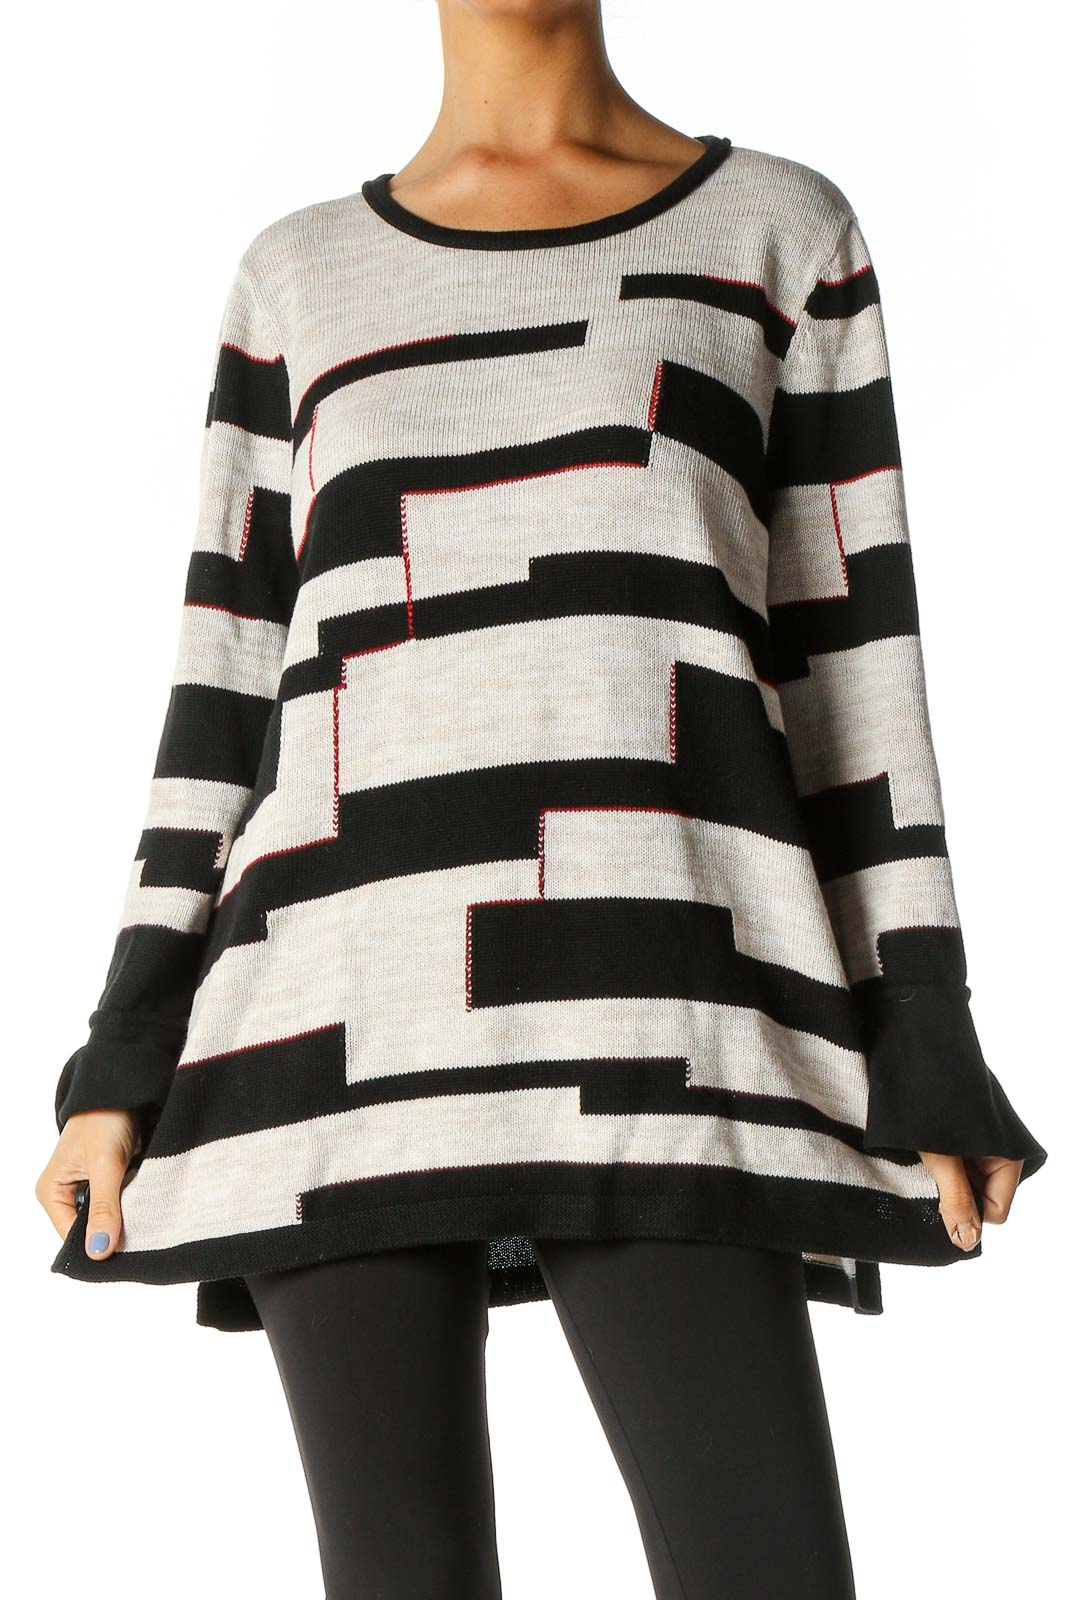 Black Geometric Print Casual Sweater Front